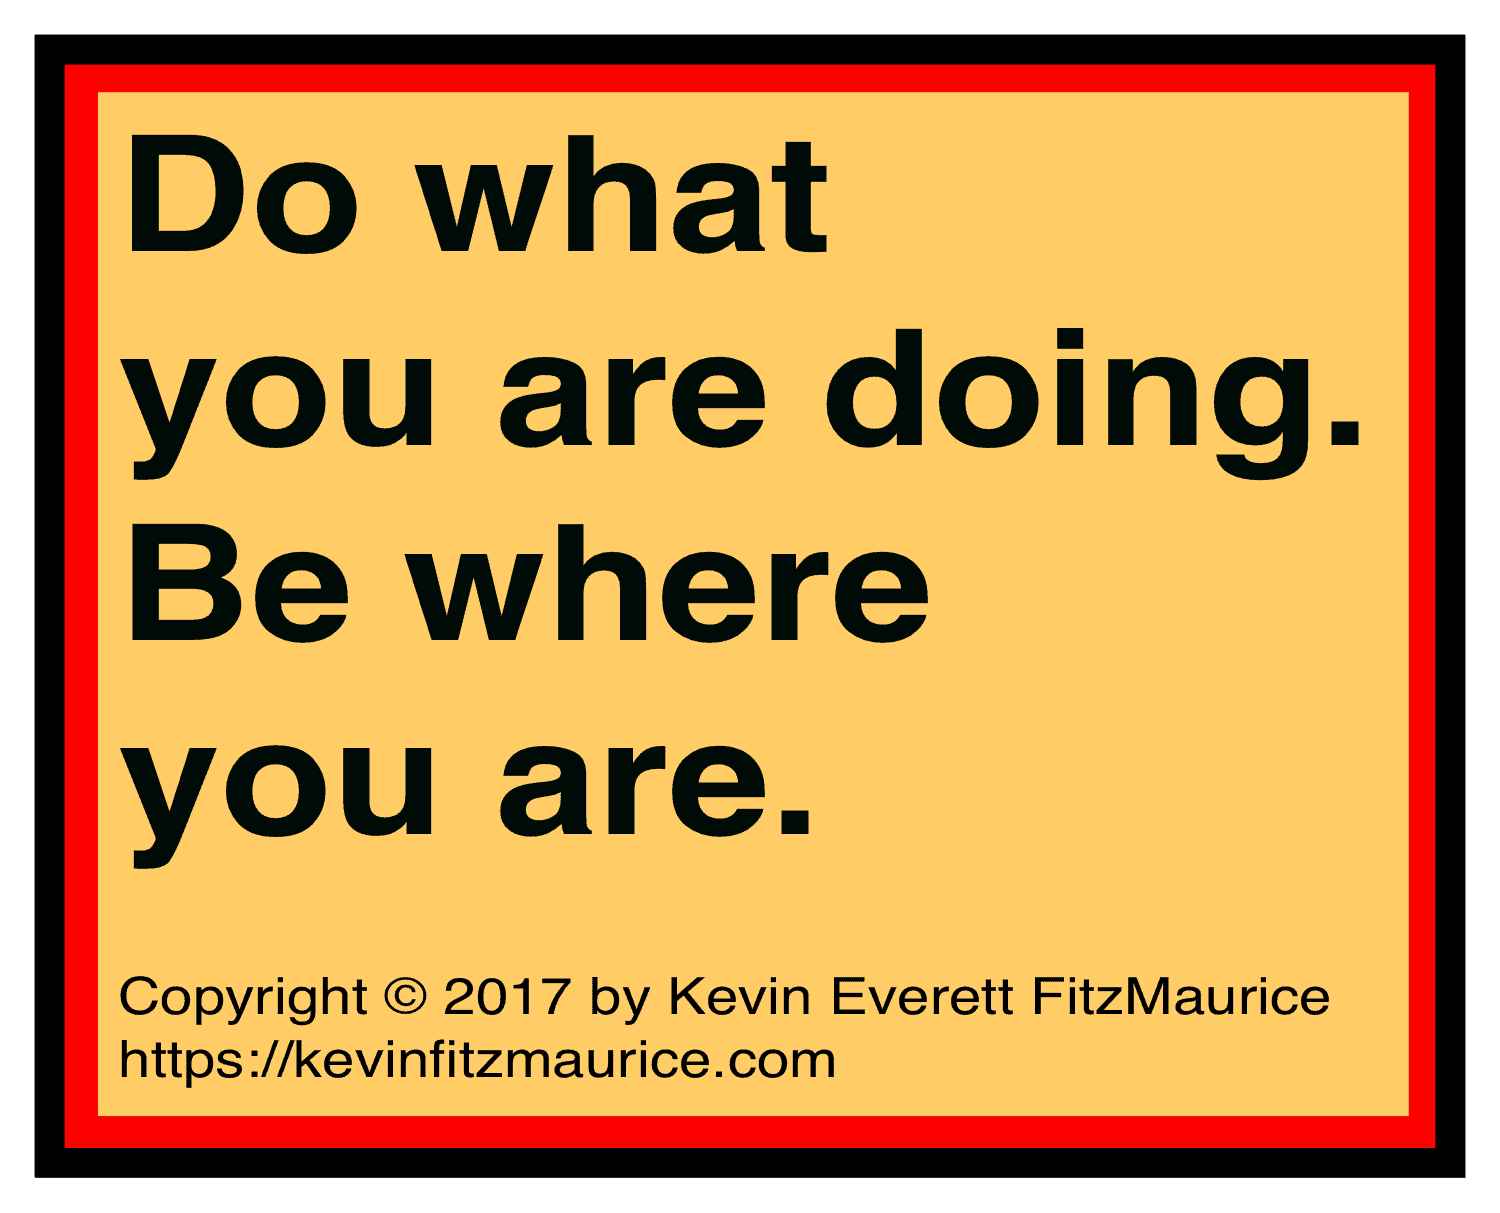 Do what you are doing and be where you are.